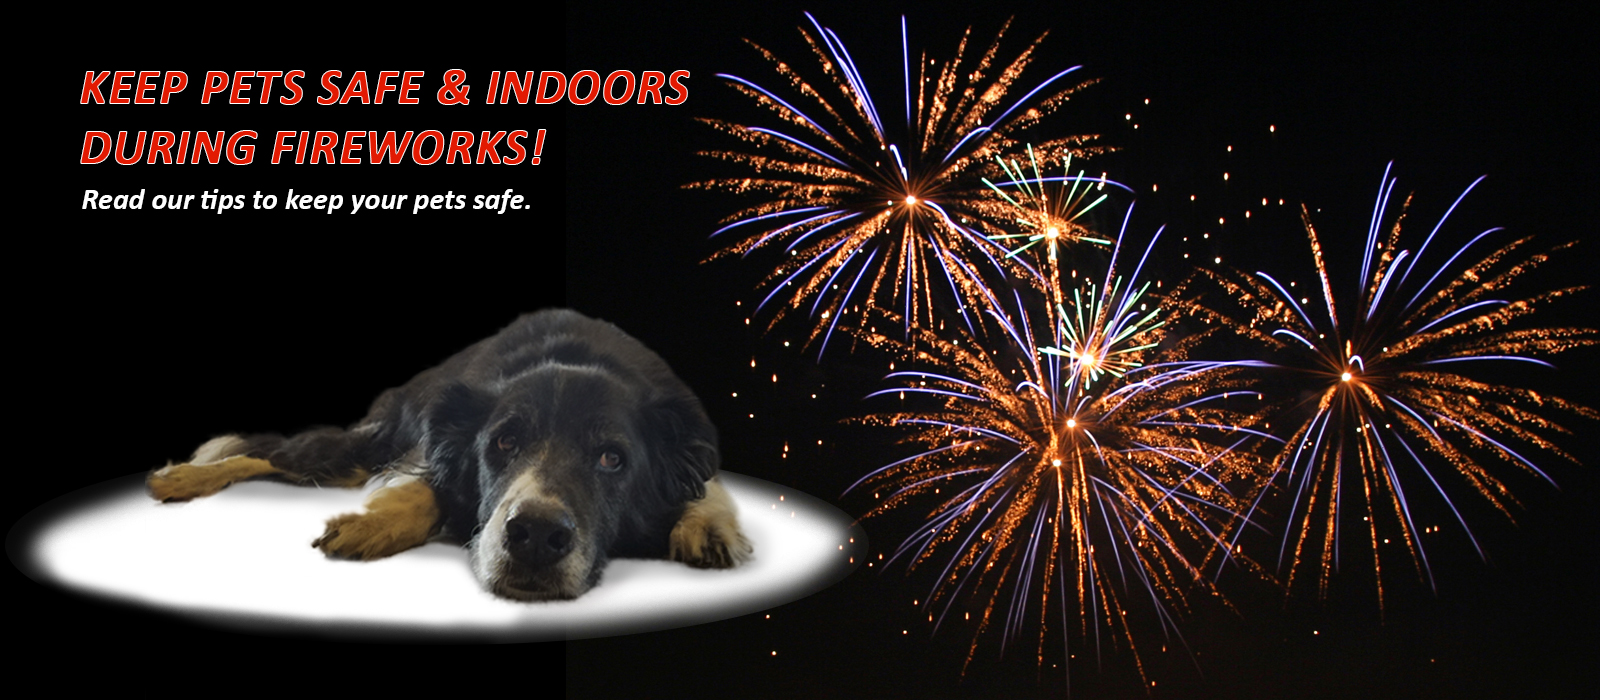 Pet owner tips for the Fourth of July Holiday